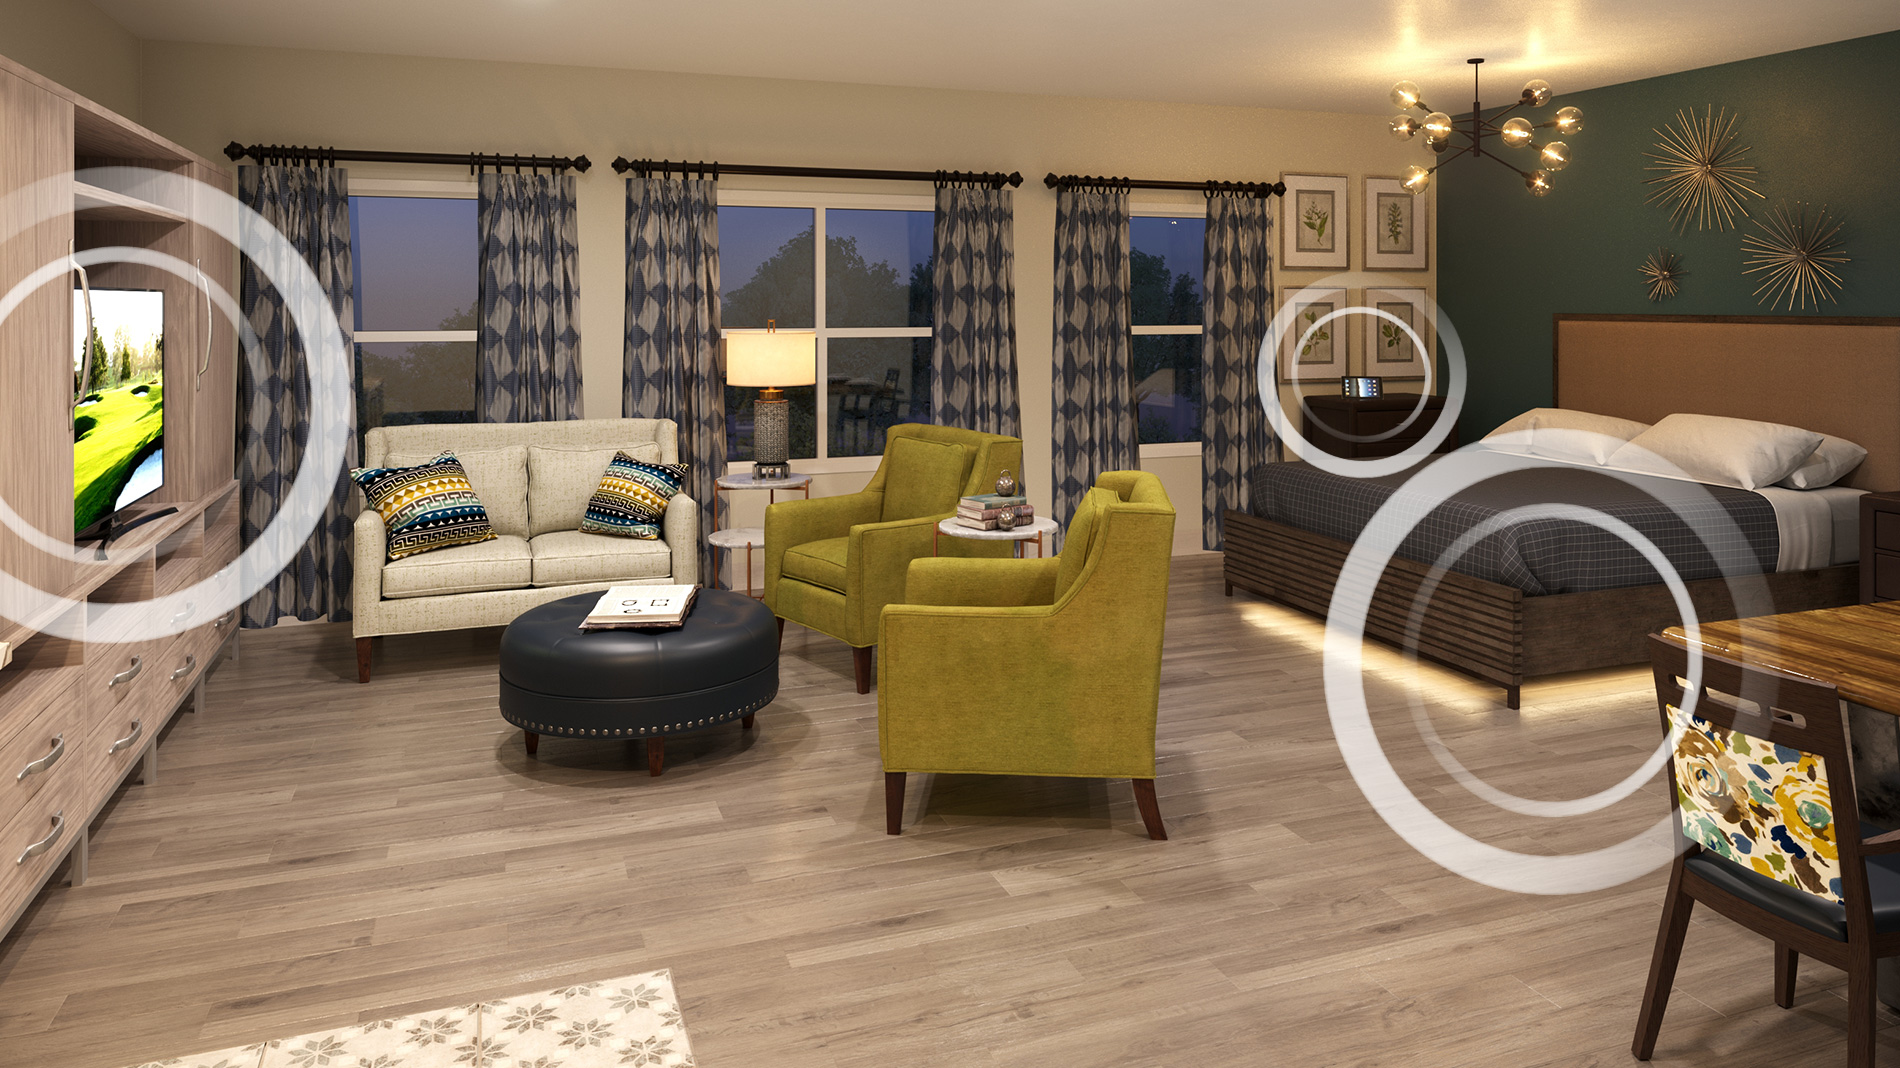 Senior Living Bedroom With Incorporated Technology